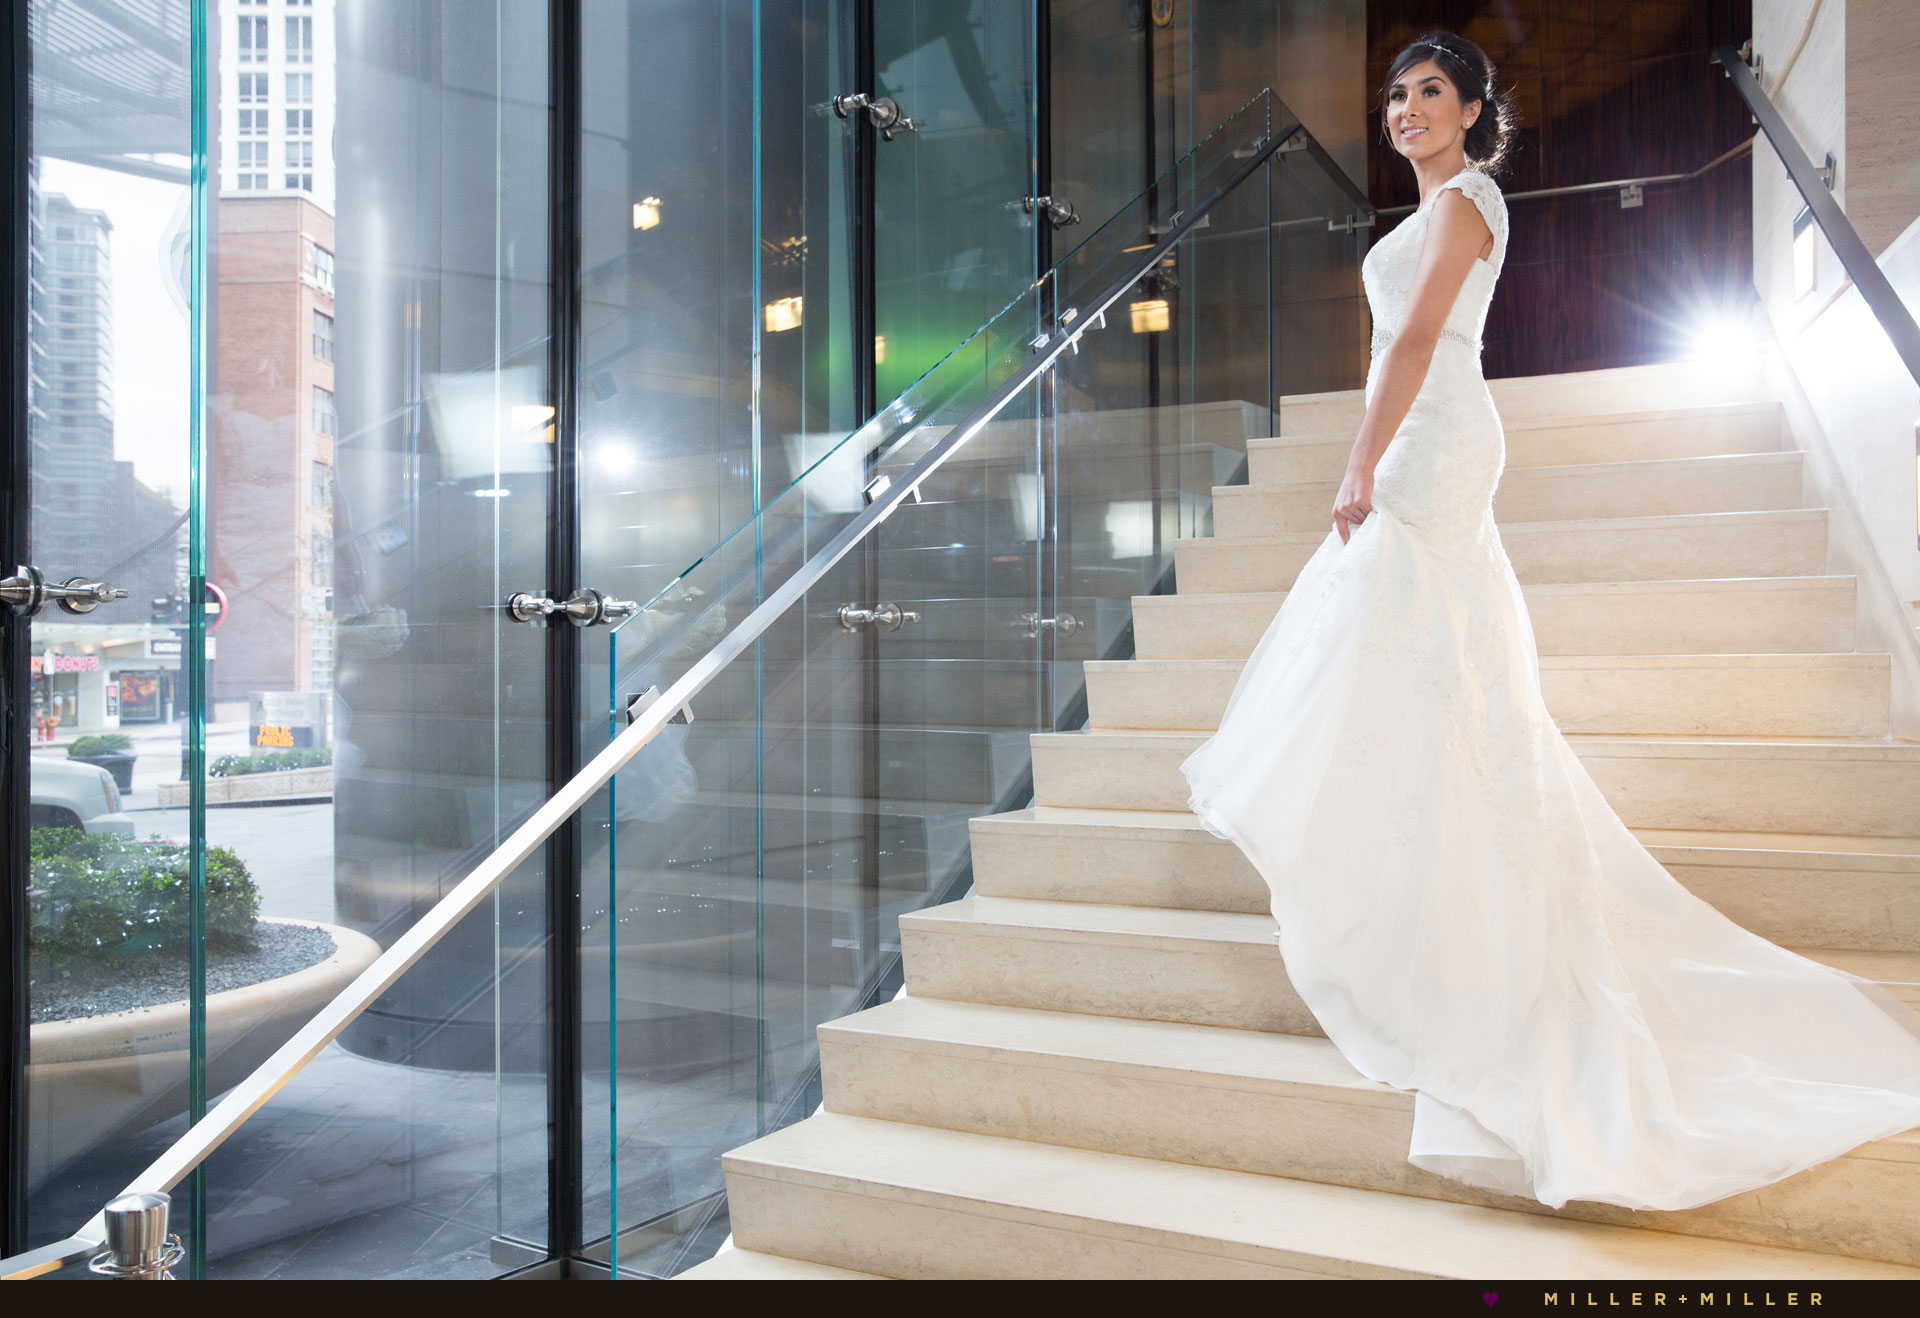 Trump Tower Chicago lobby wedding photos